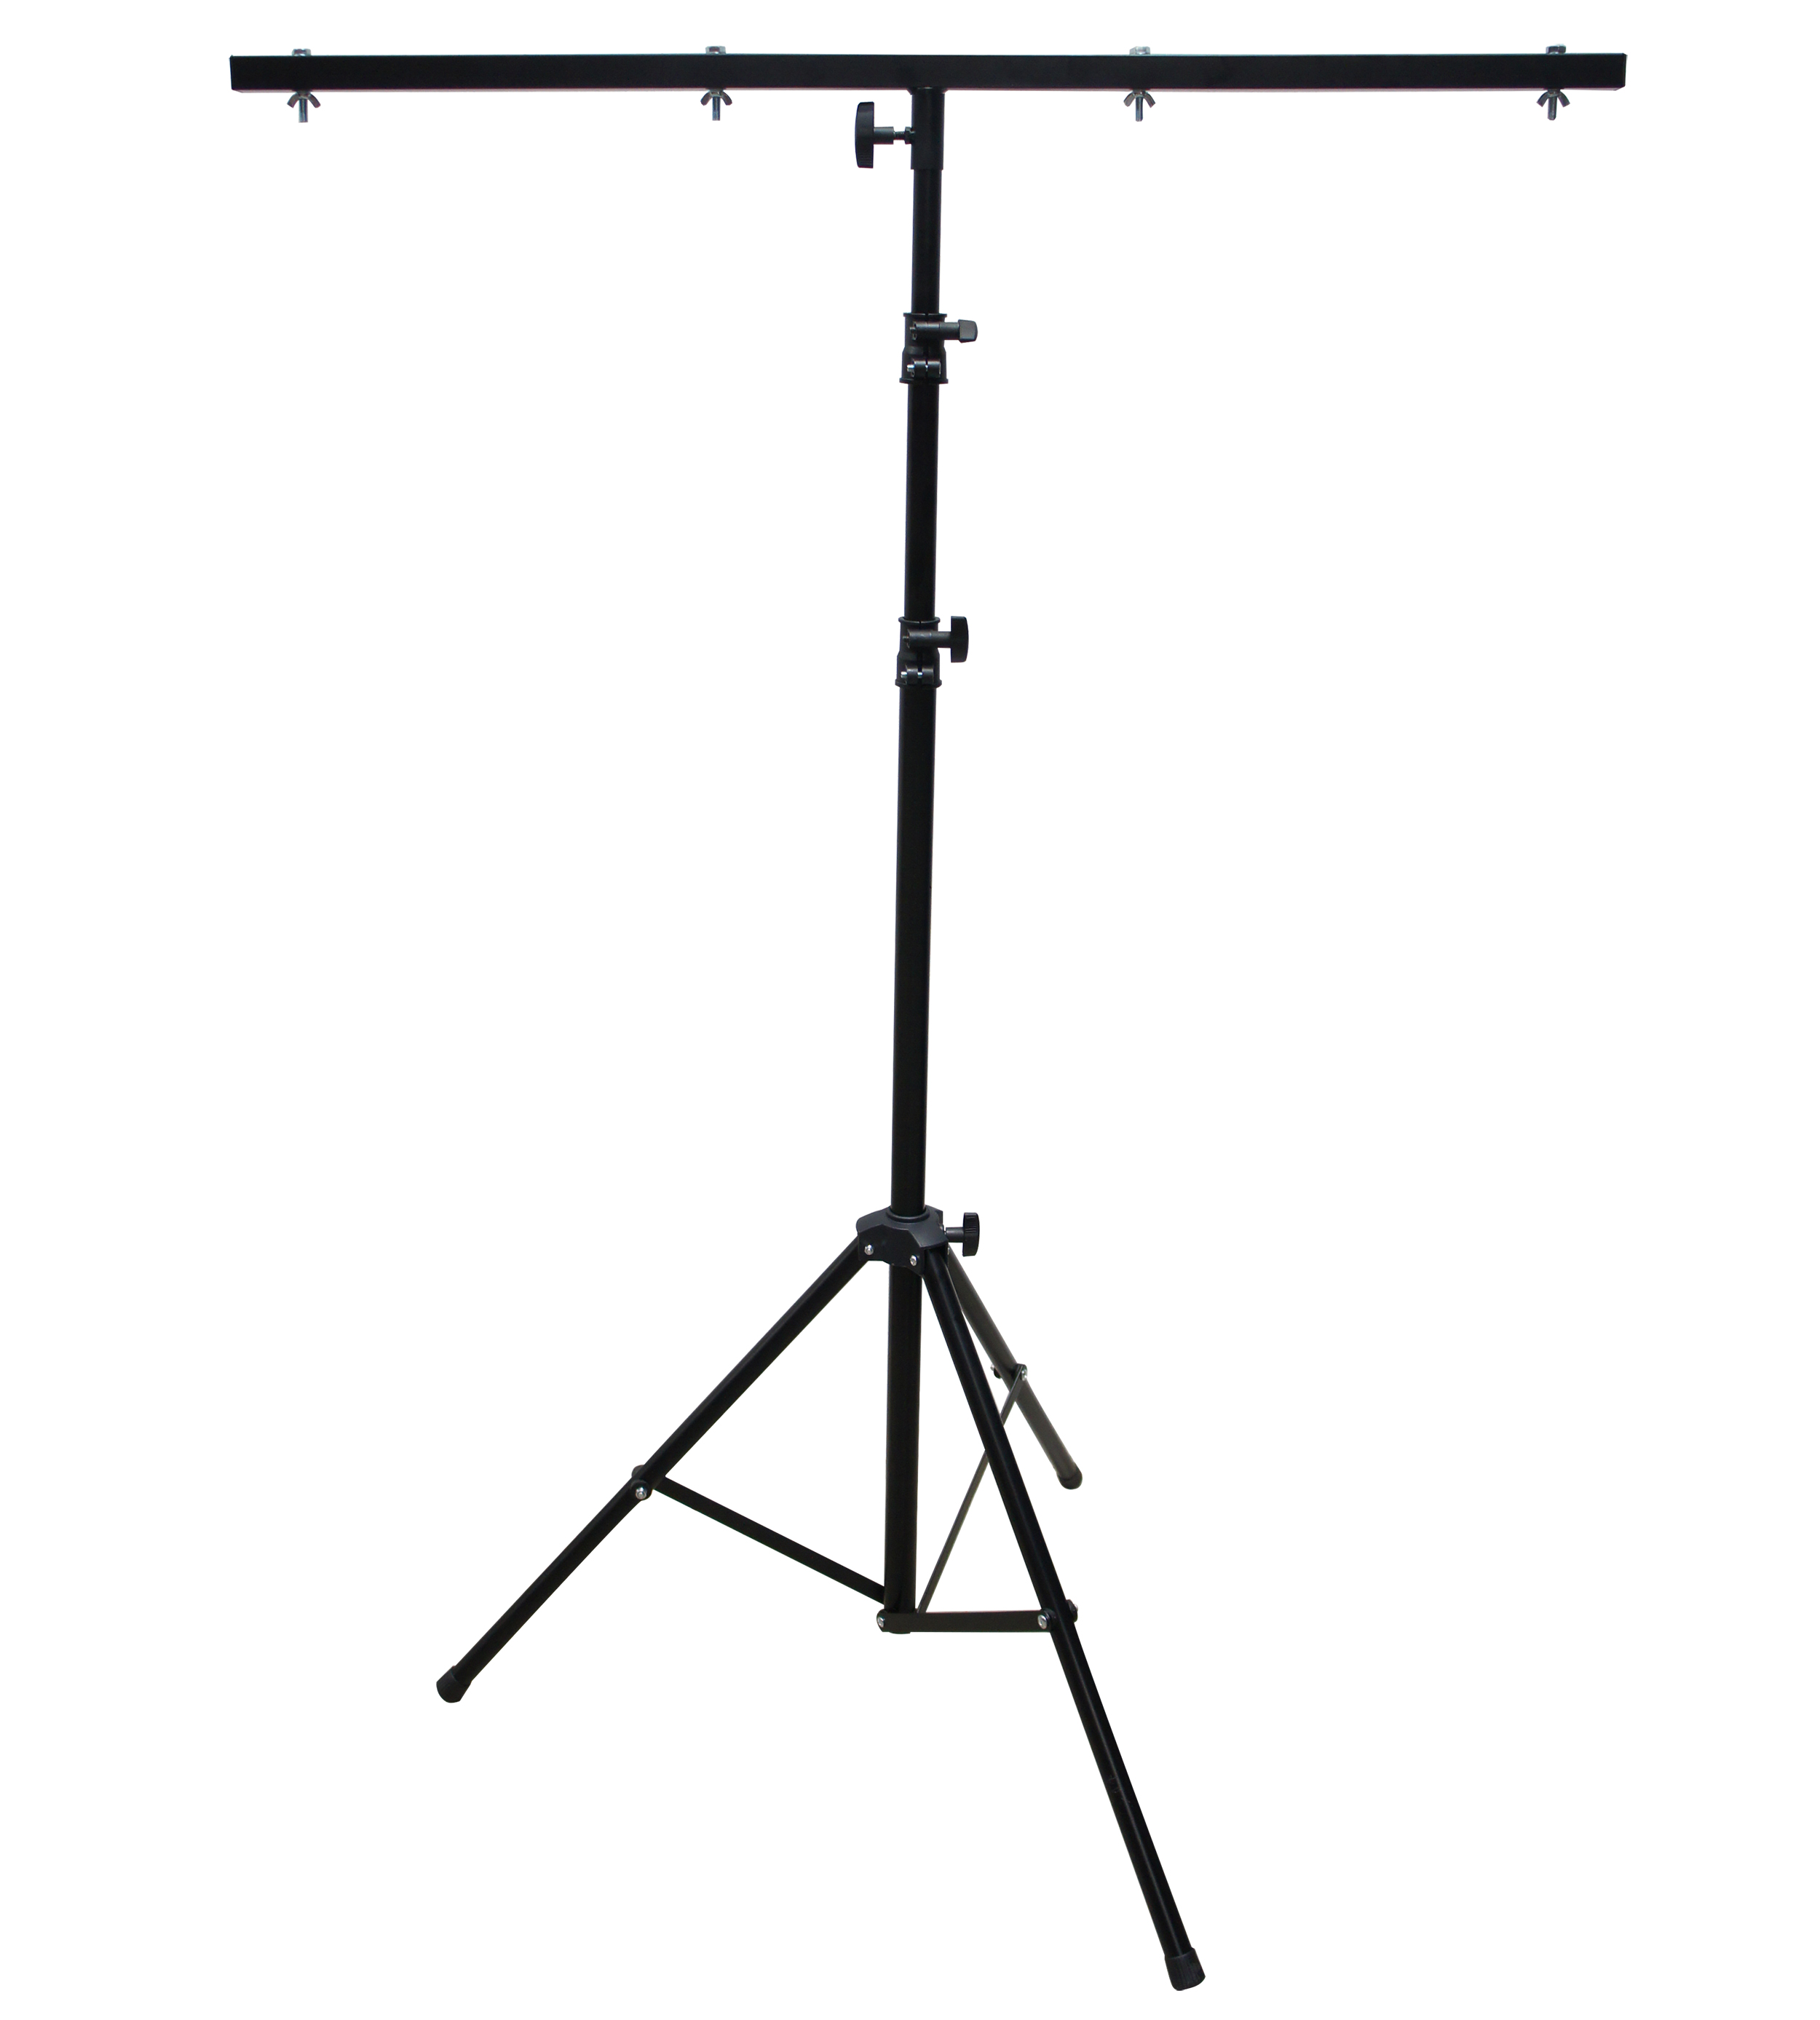 Harmony Audio Ha Tbarstand Pro Audio Dj Lighting Tripod